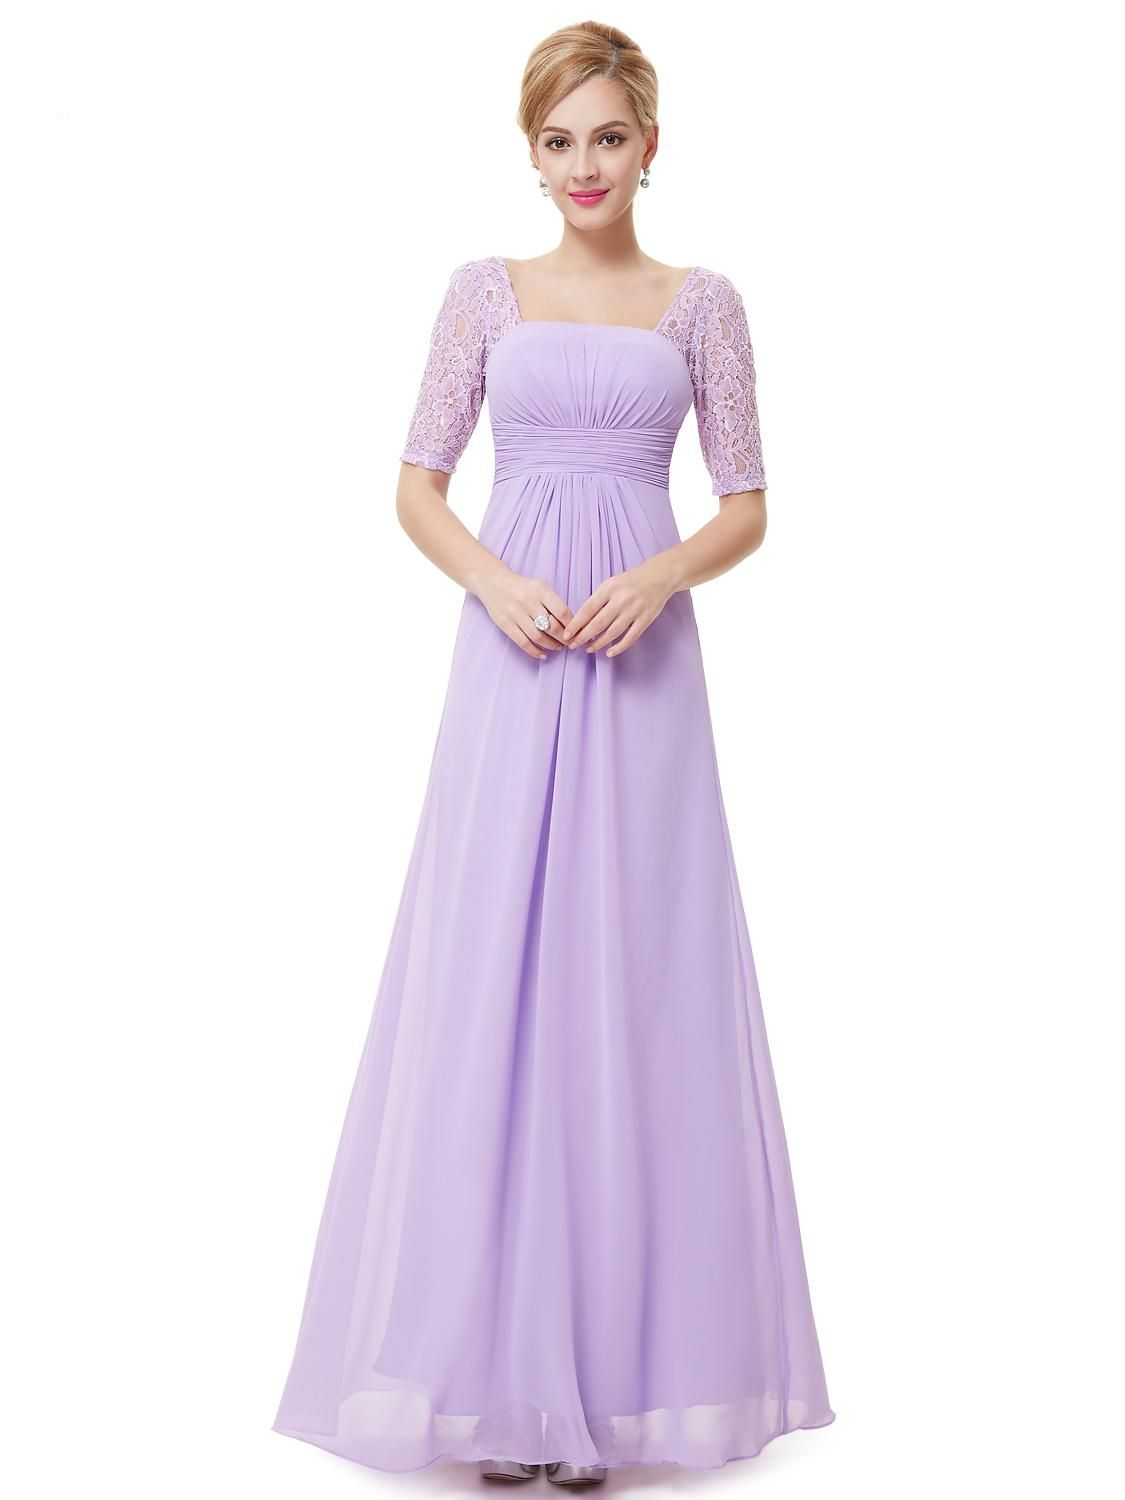 Sexy-Fashion-Lilac-Purple-Lace-Square-Neckline-Long-Prom-Evening ...